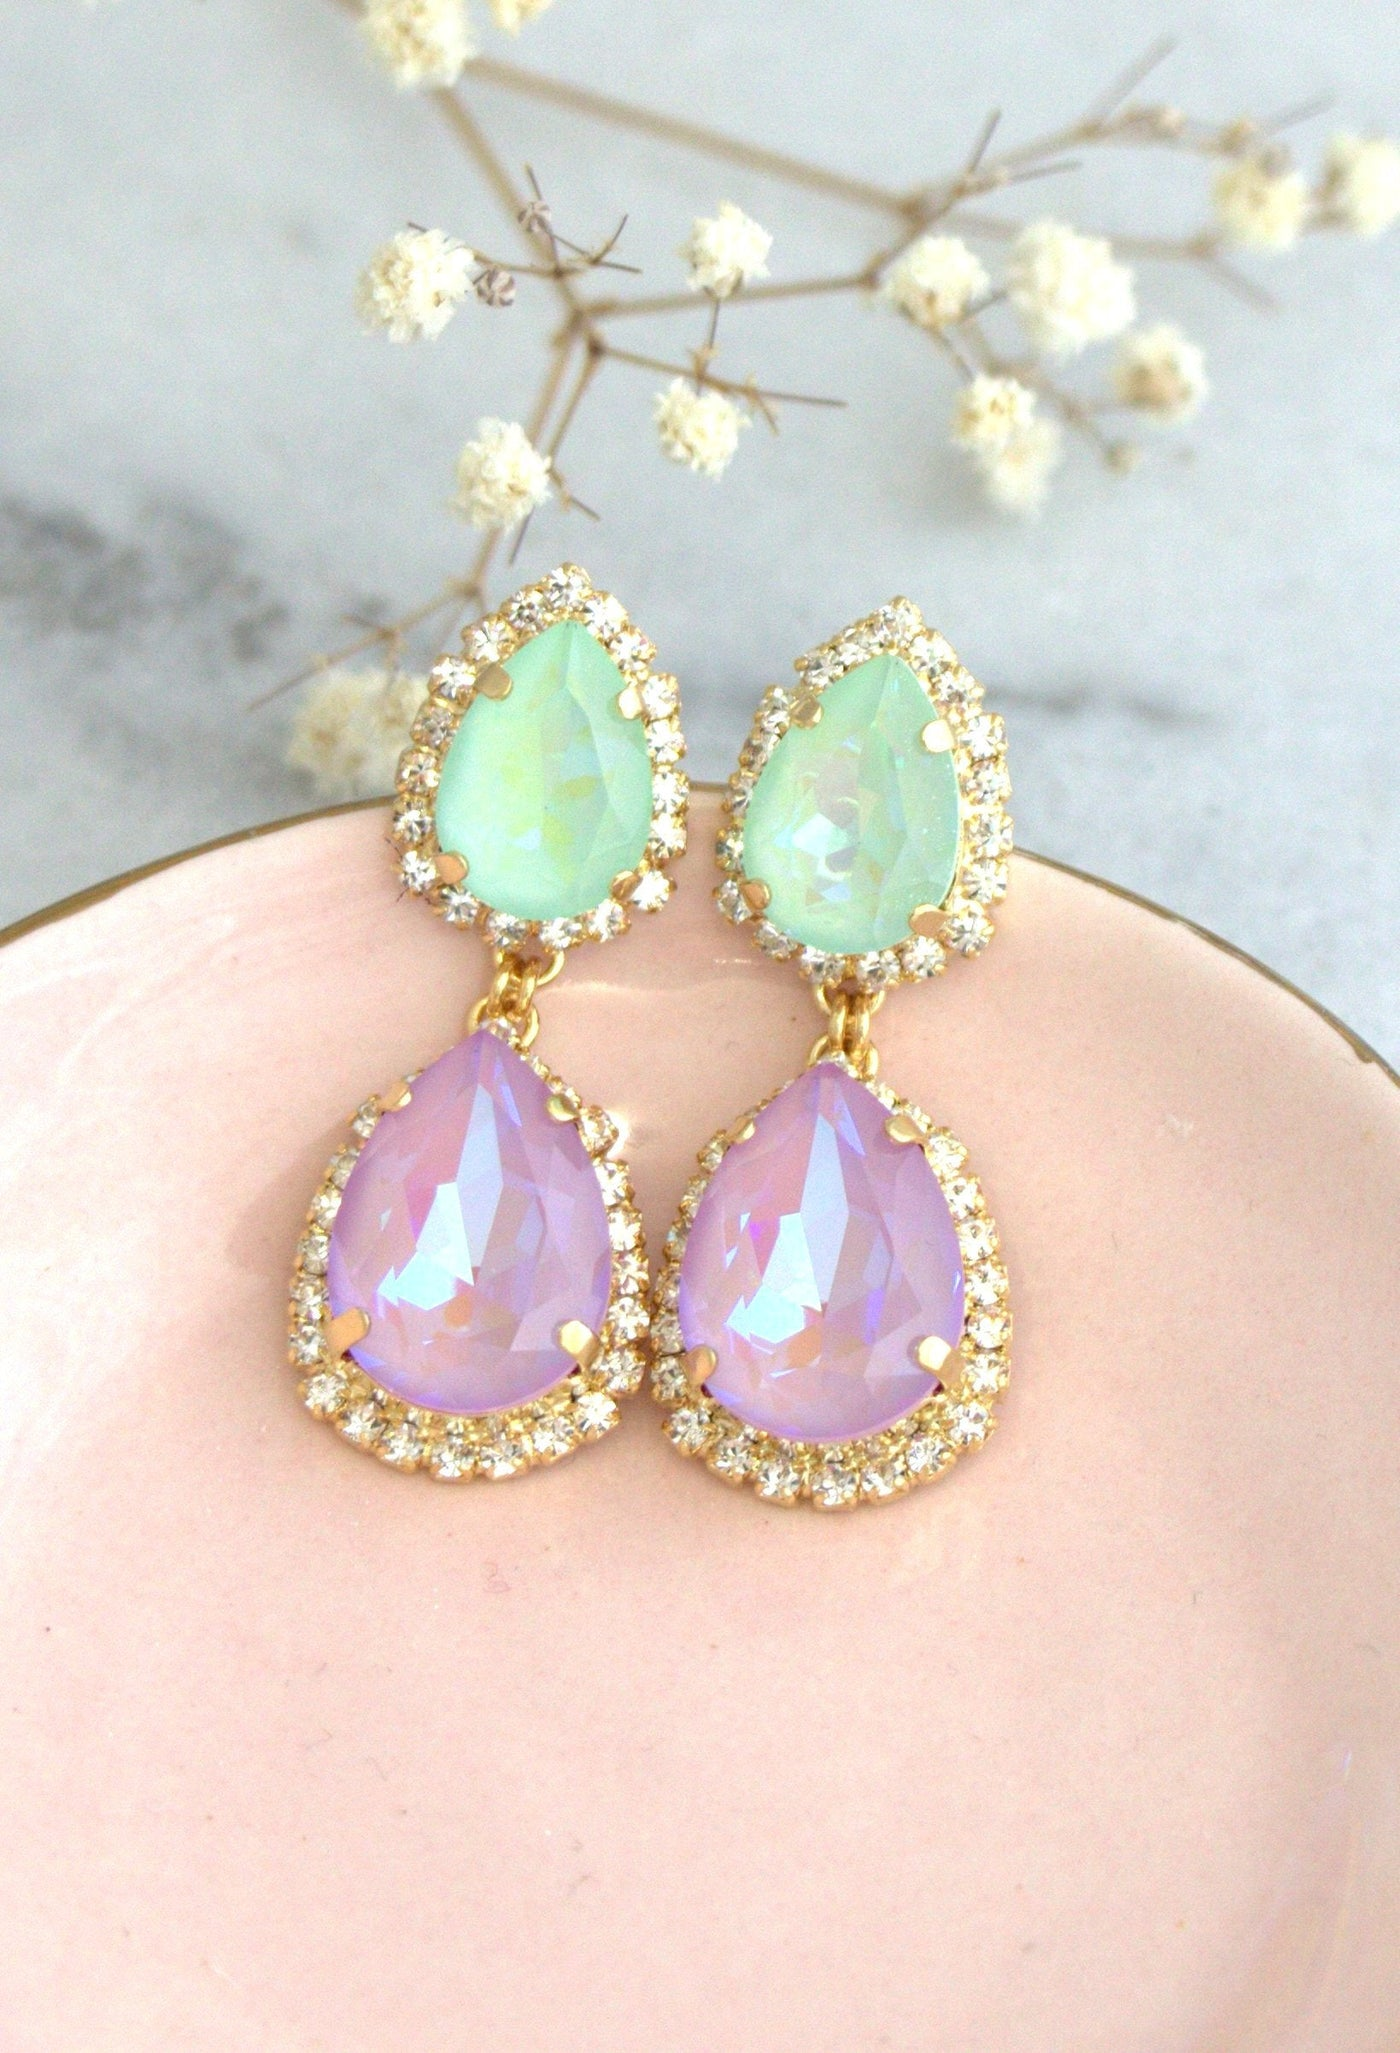 Emma Lavender Mint Crystal Swarovski Chandelier Earrings